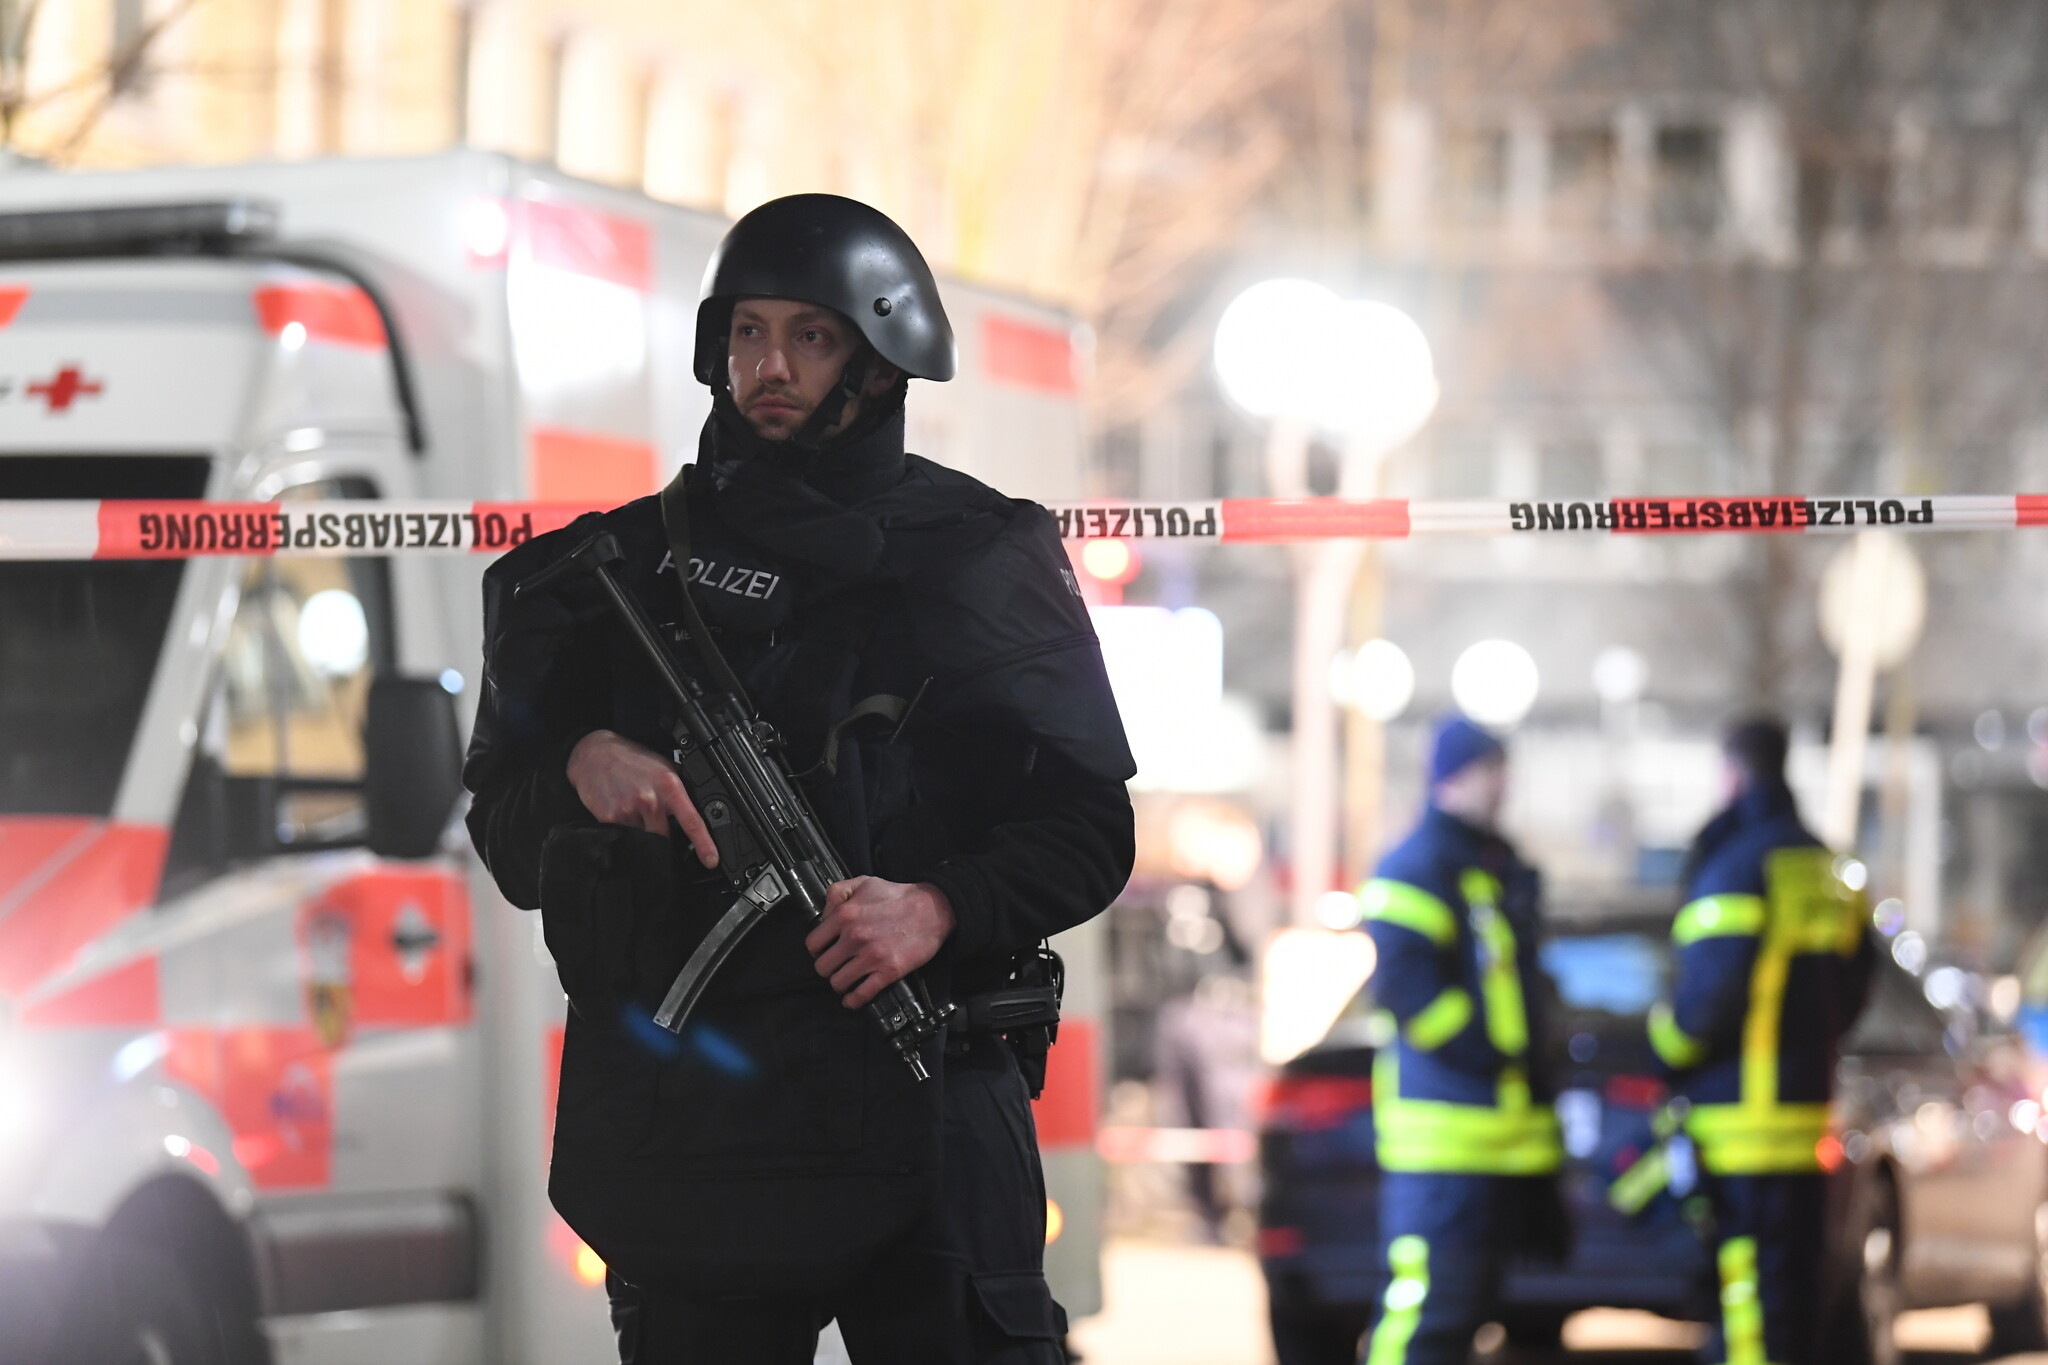 Germany to investigate mass shooting as right-wing terrorist attack